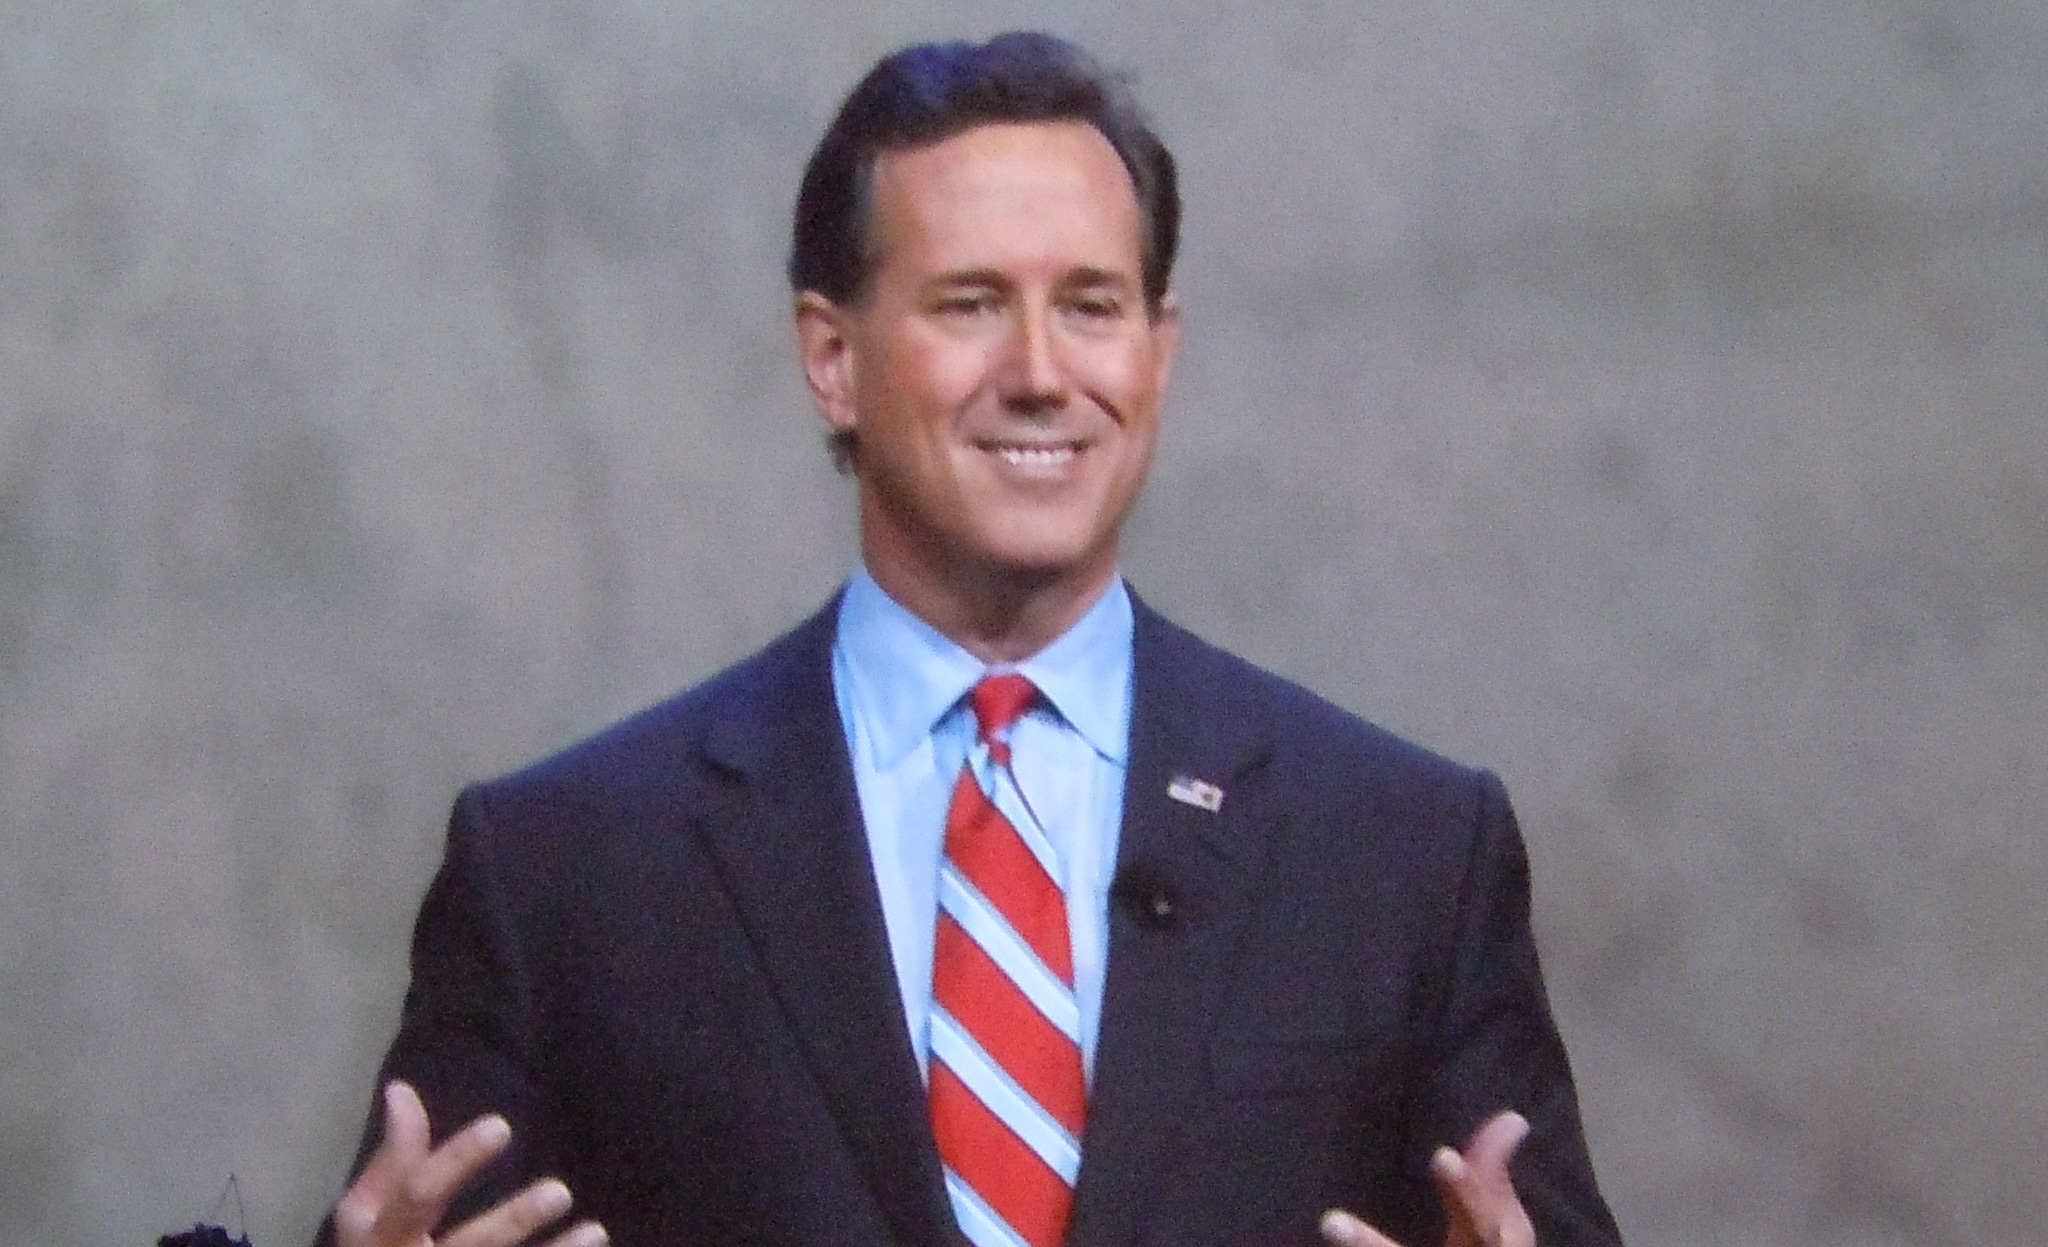 Republican presidential candidate Rick Santorum spoke at the NRA's annual conference in Nashville, Tennessee, on Friday. (Photo: Chris Eger/Guns.com)